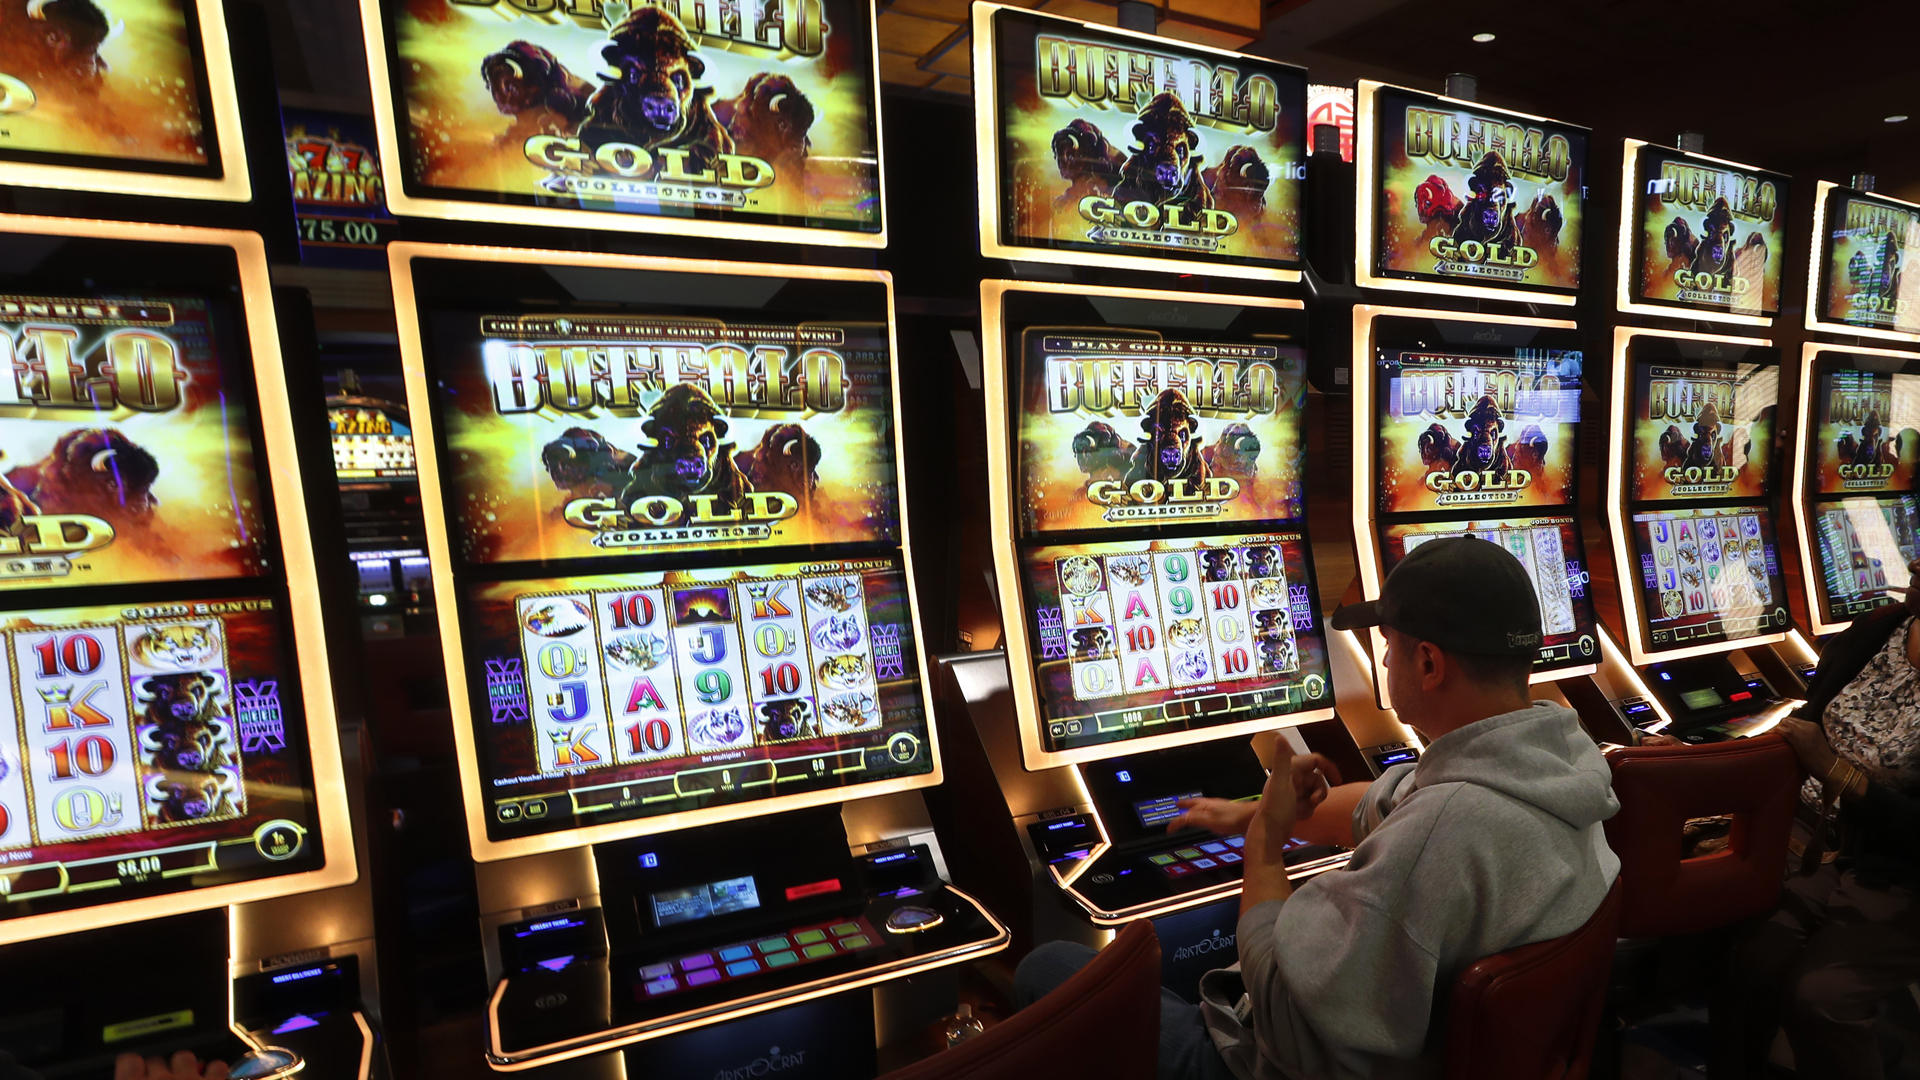 Announcement expected 'very soon' for online gambling   WOODTV.com